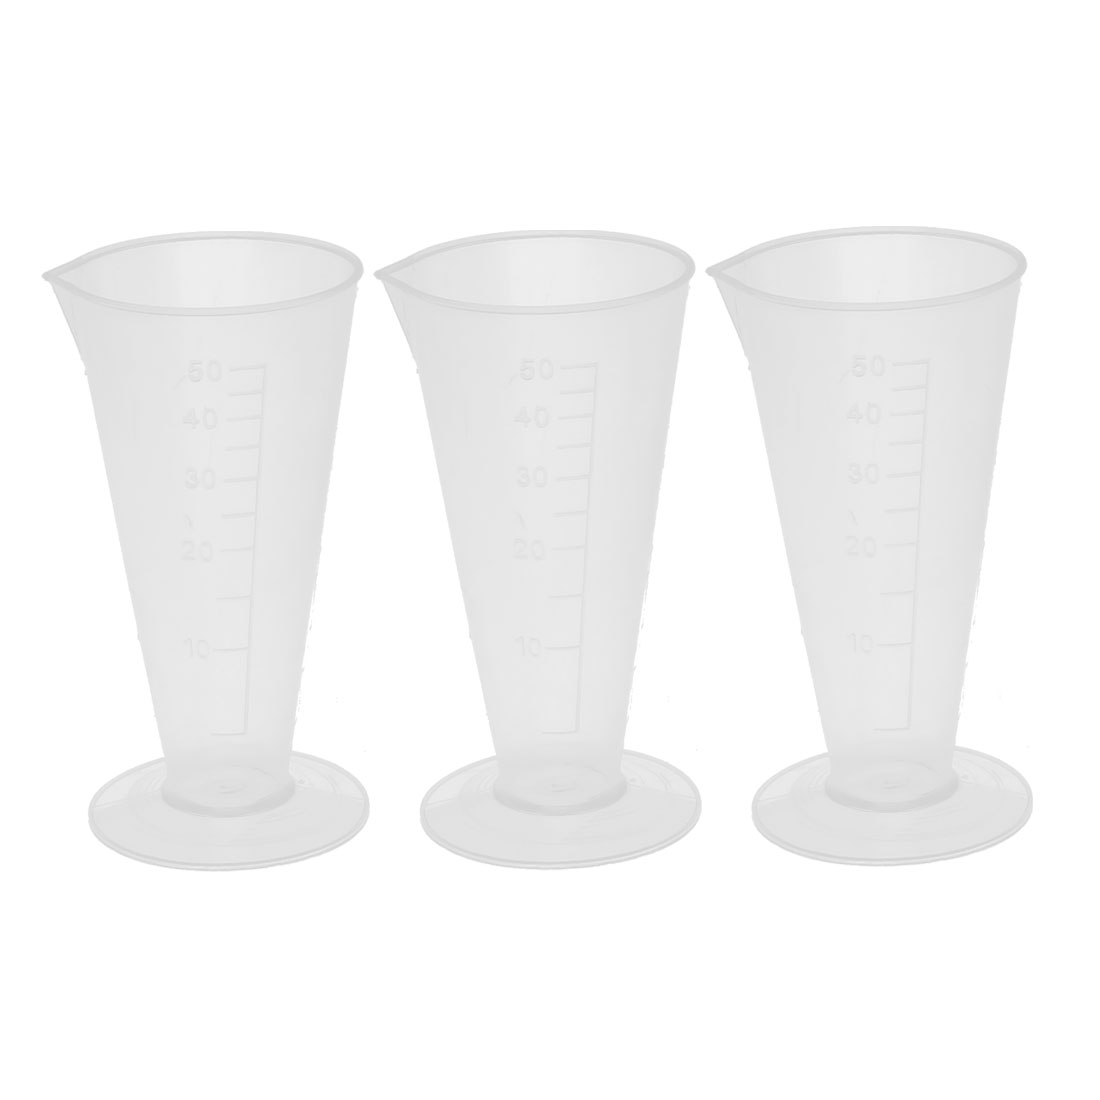 3 Pcs 50mL Clear White Plastic Conical Beaker Laboratory Graduated Measuring Cylinder Cup